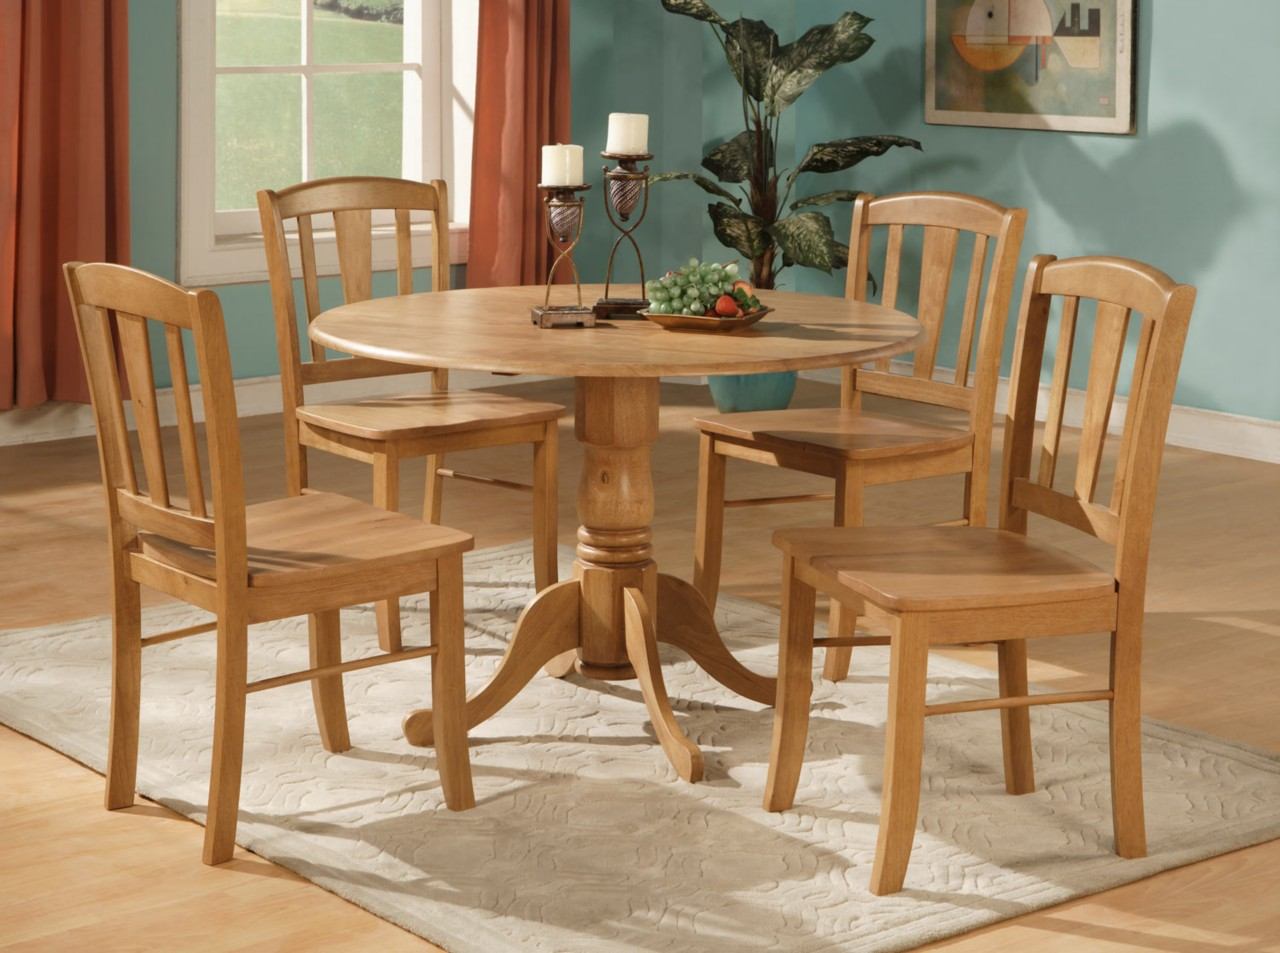 5pc round dinette kitchen dining set table and 4 chairs ebay. Black Bedroom Furniture Sets. Home Design Ideas